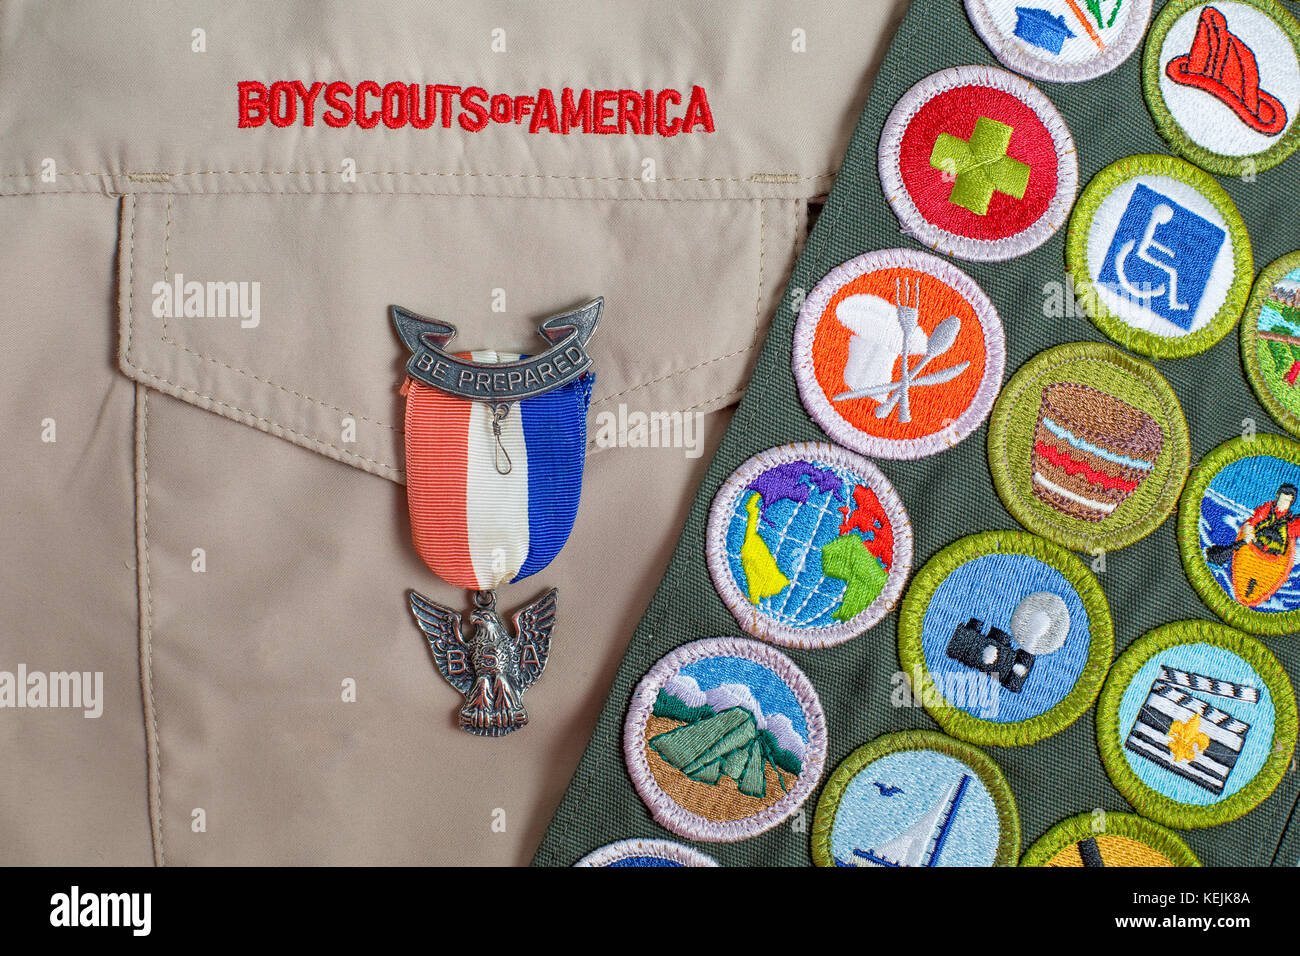 SAINT LOUIS, UNITED STATES - OCTOBER 16, 2017:  Eagle pin and merit badge sash on boy scouts of america uniform - Stock Image